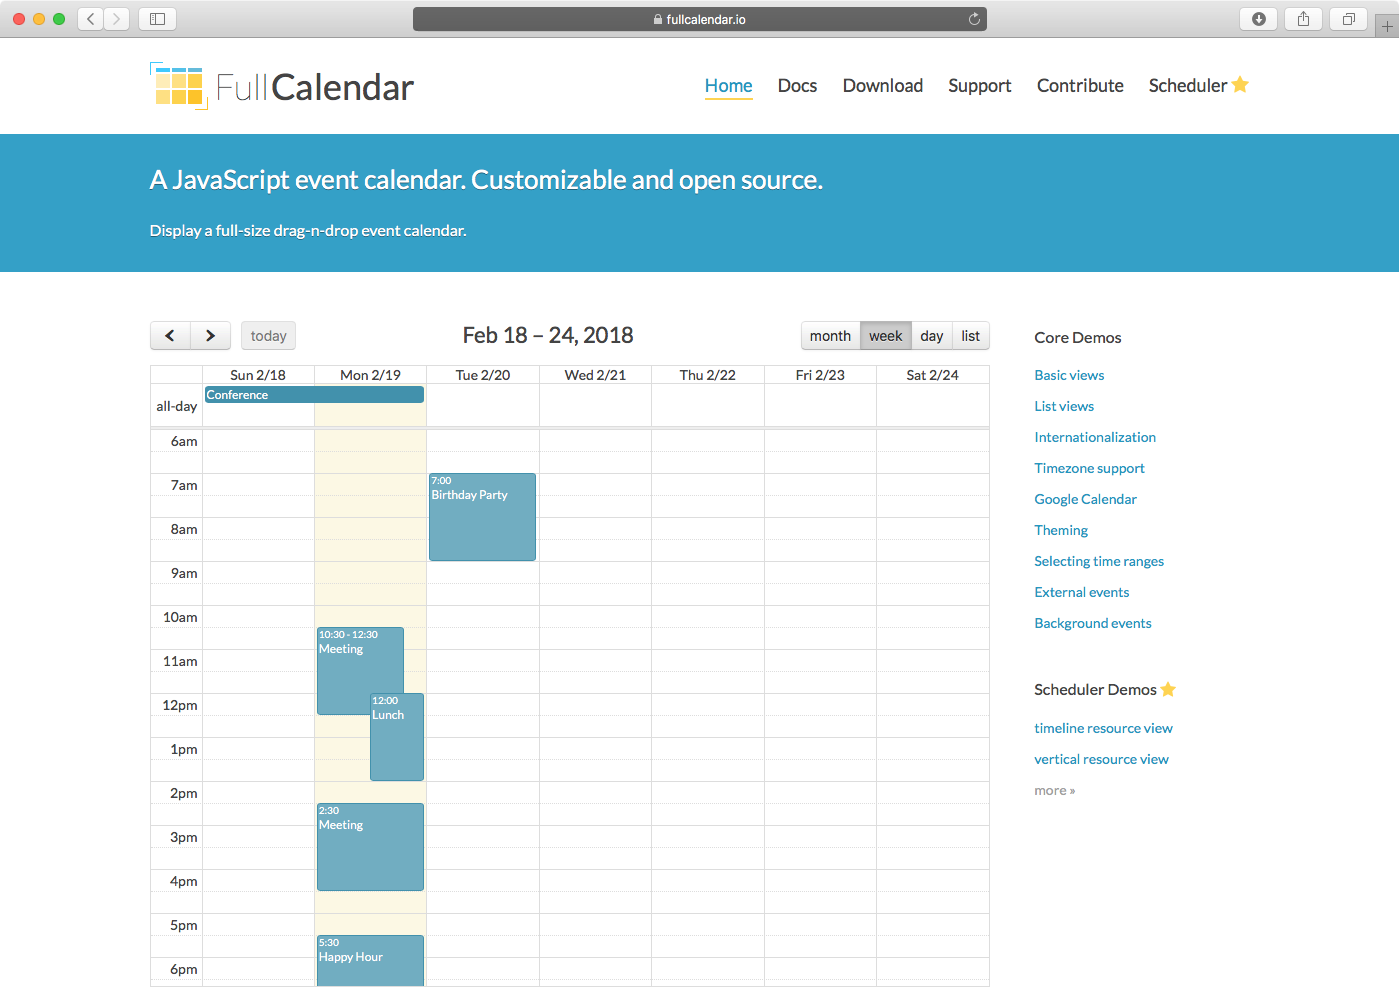 filemaker-webviewer-calendar-library1